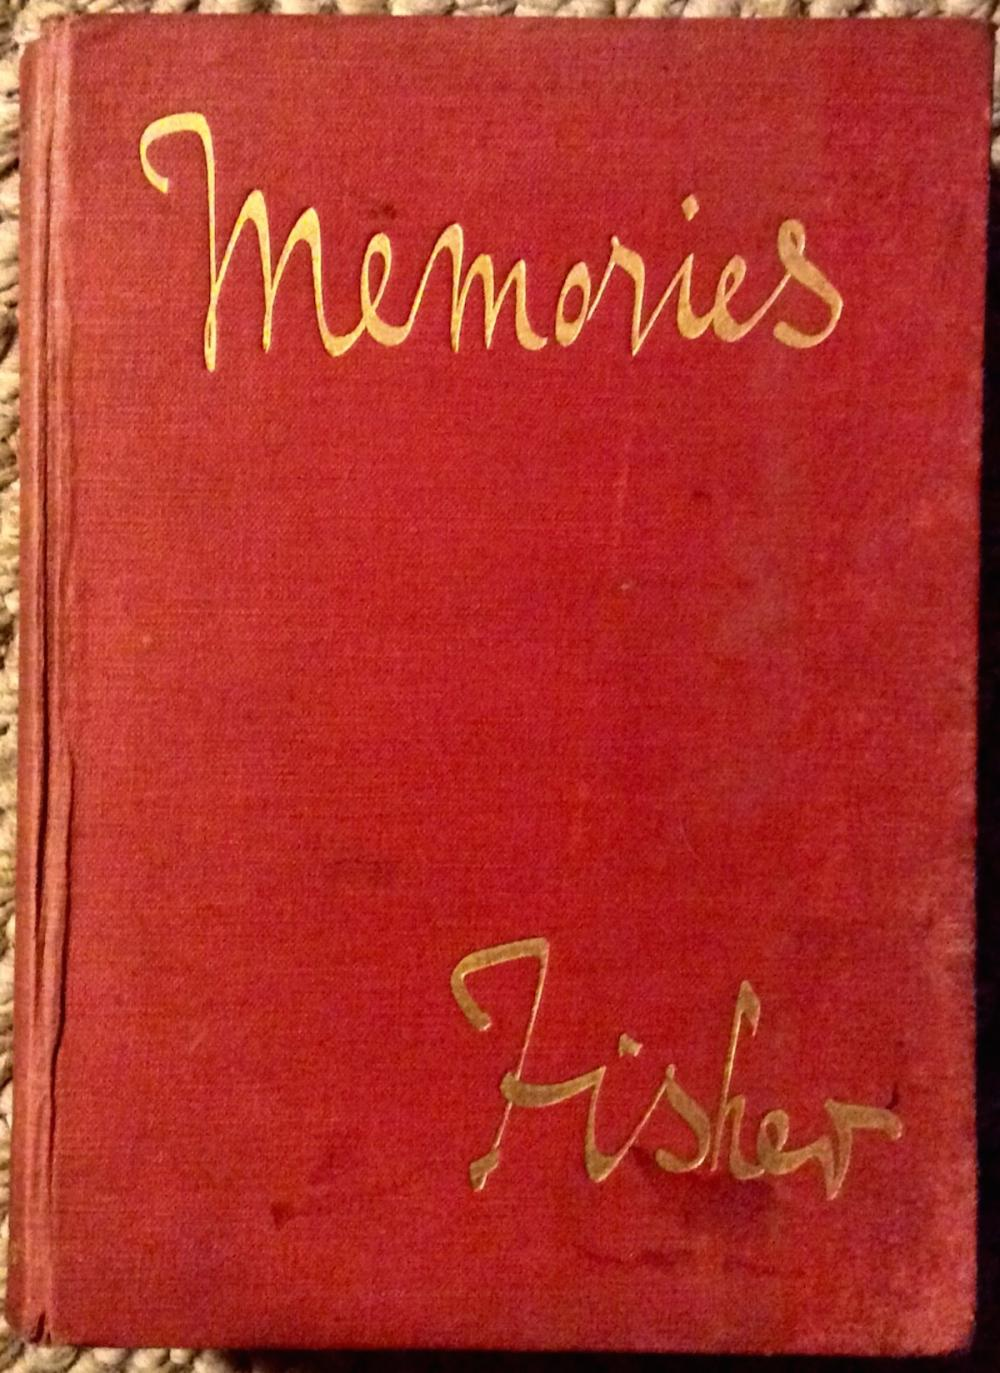 """Memories"" by Admiral Of The Fleet Lord (""Jackie"") Fisher ANTIQUE 1919 Hardcover Autobiography Of British Admiral Of The Fleet Lord Fisher Edition 1st Edition 1st Printing"